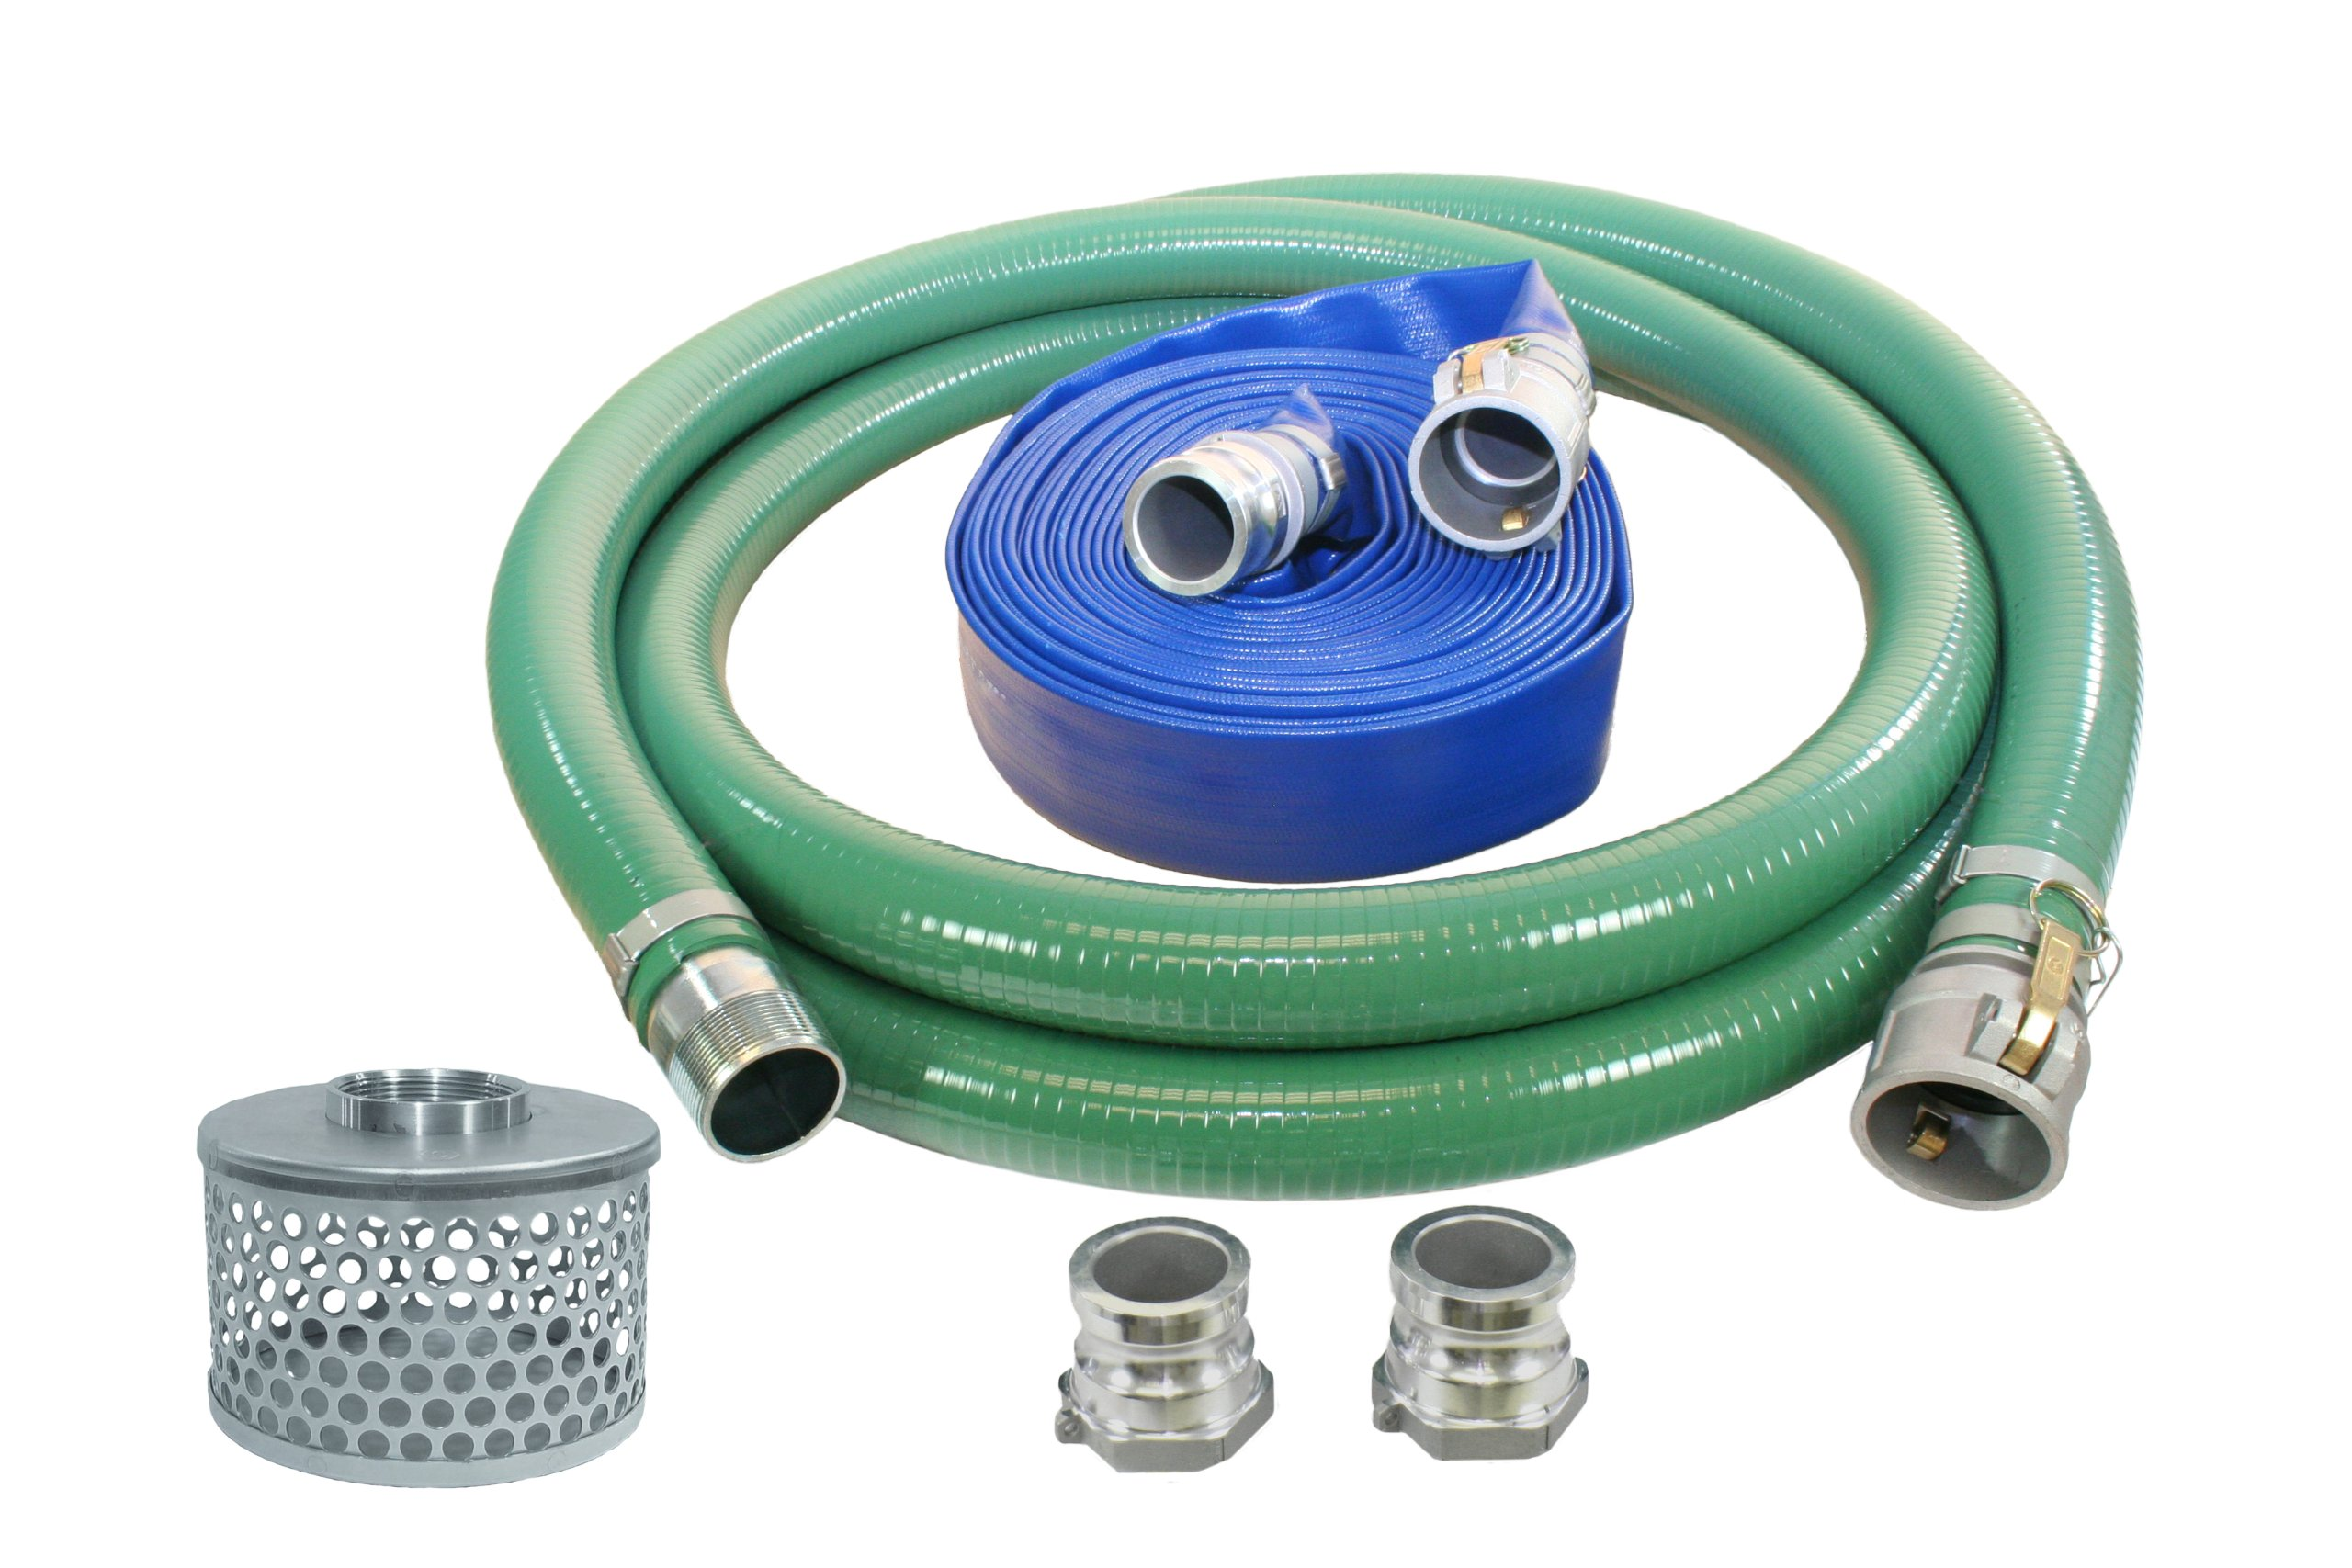 Abbott Rubber PVC Suction and Discharge Hose Pump Kit, Green/Blue, 1-1/2'' Male X Female Aluminum Cam and Groove, 1-1/2'' ID by Abbott Rubber